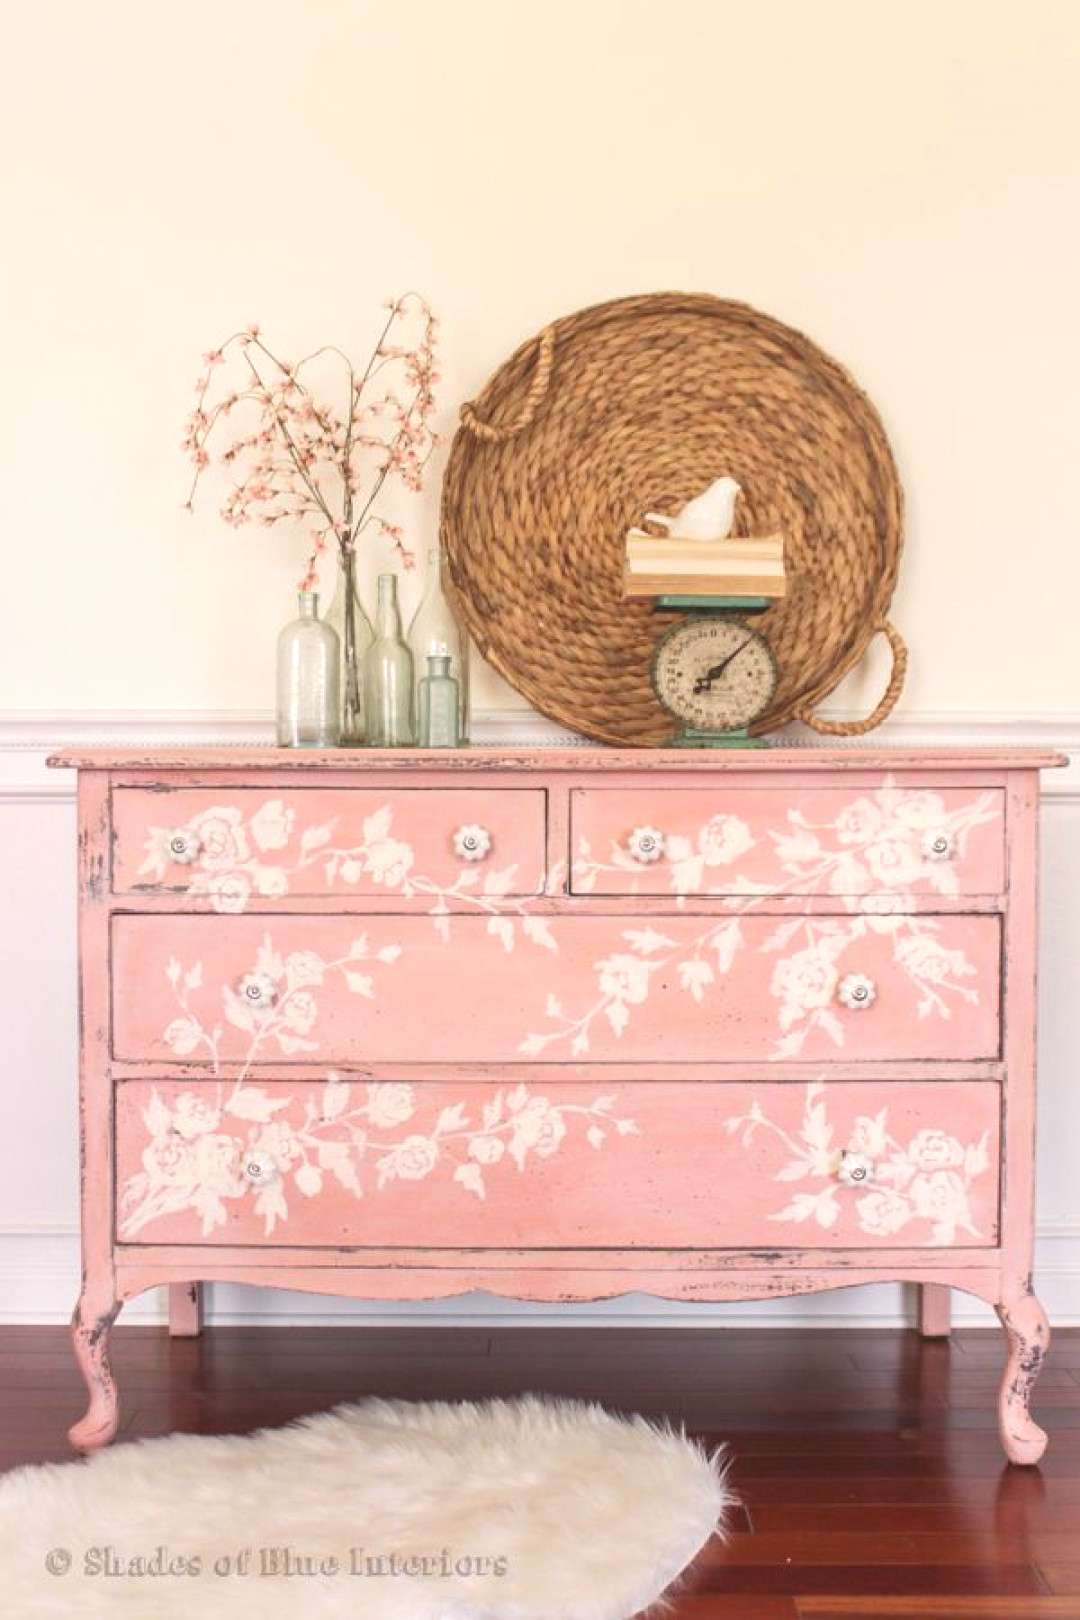 Ironstone and Apron Strings miss mustard seed painted dresser.....love the hand painted floral desi